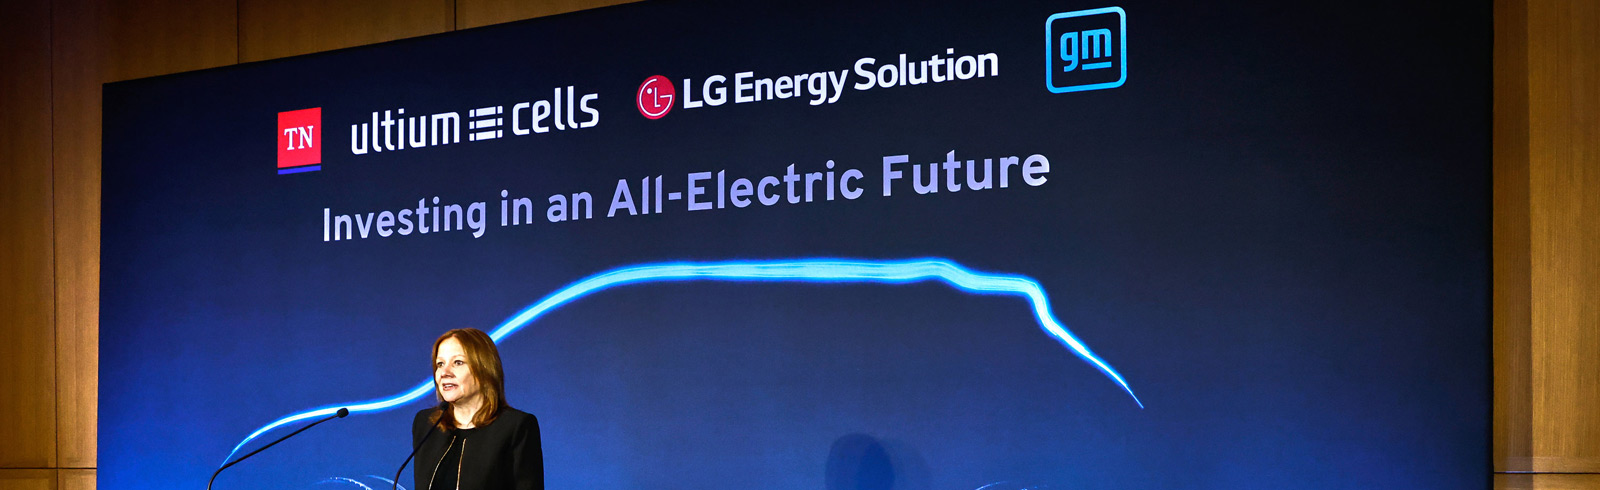 Ultium Cells (GM and LG Energy Solution) will build a second plant in the US